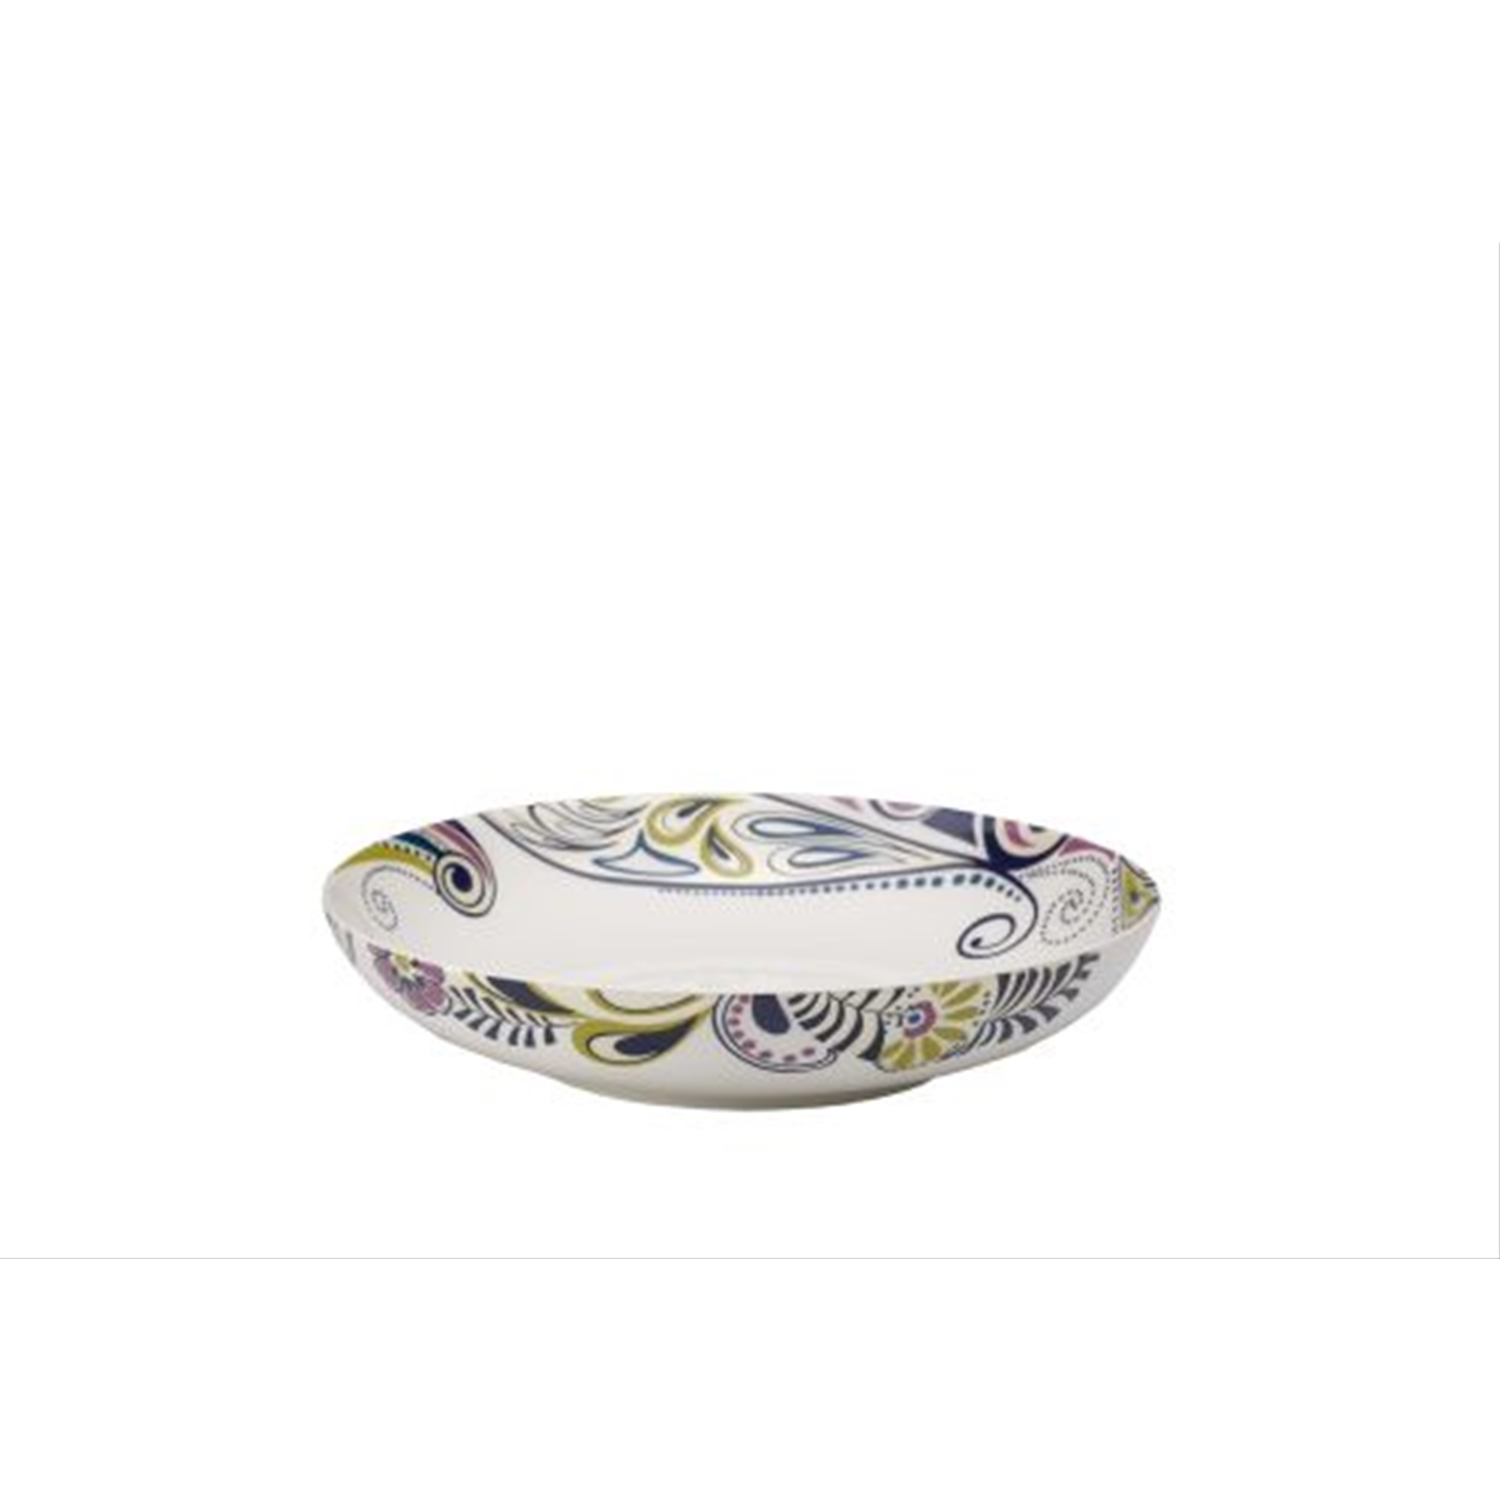 Image of Monsoon By Denby Cosmic Pasta Bowl